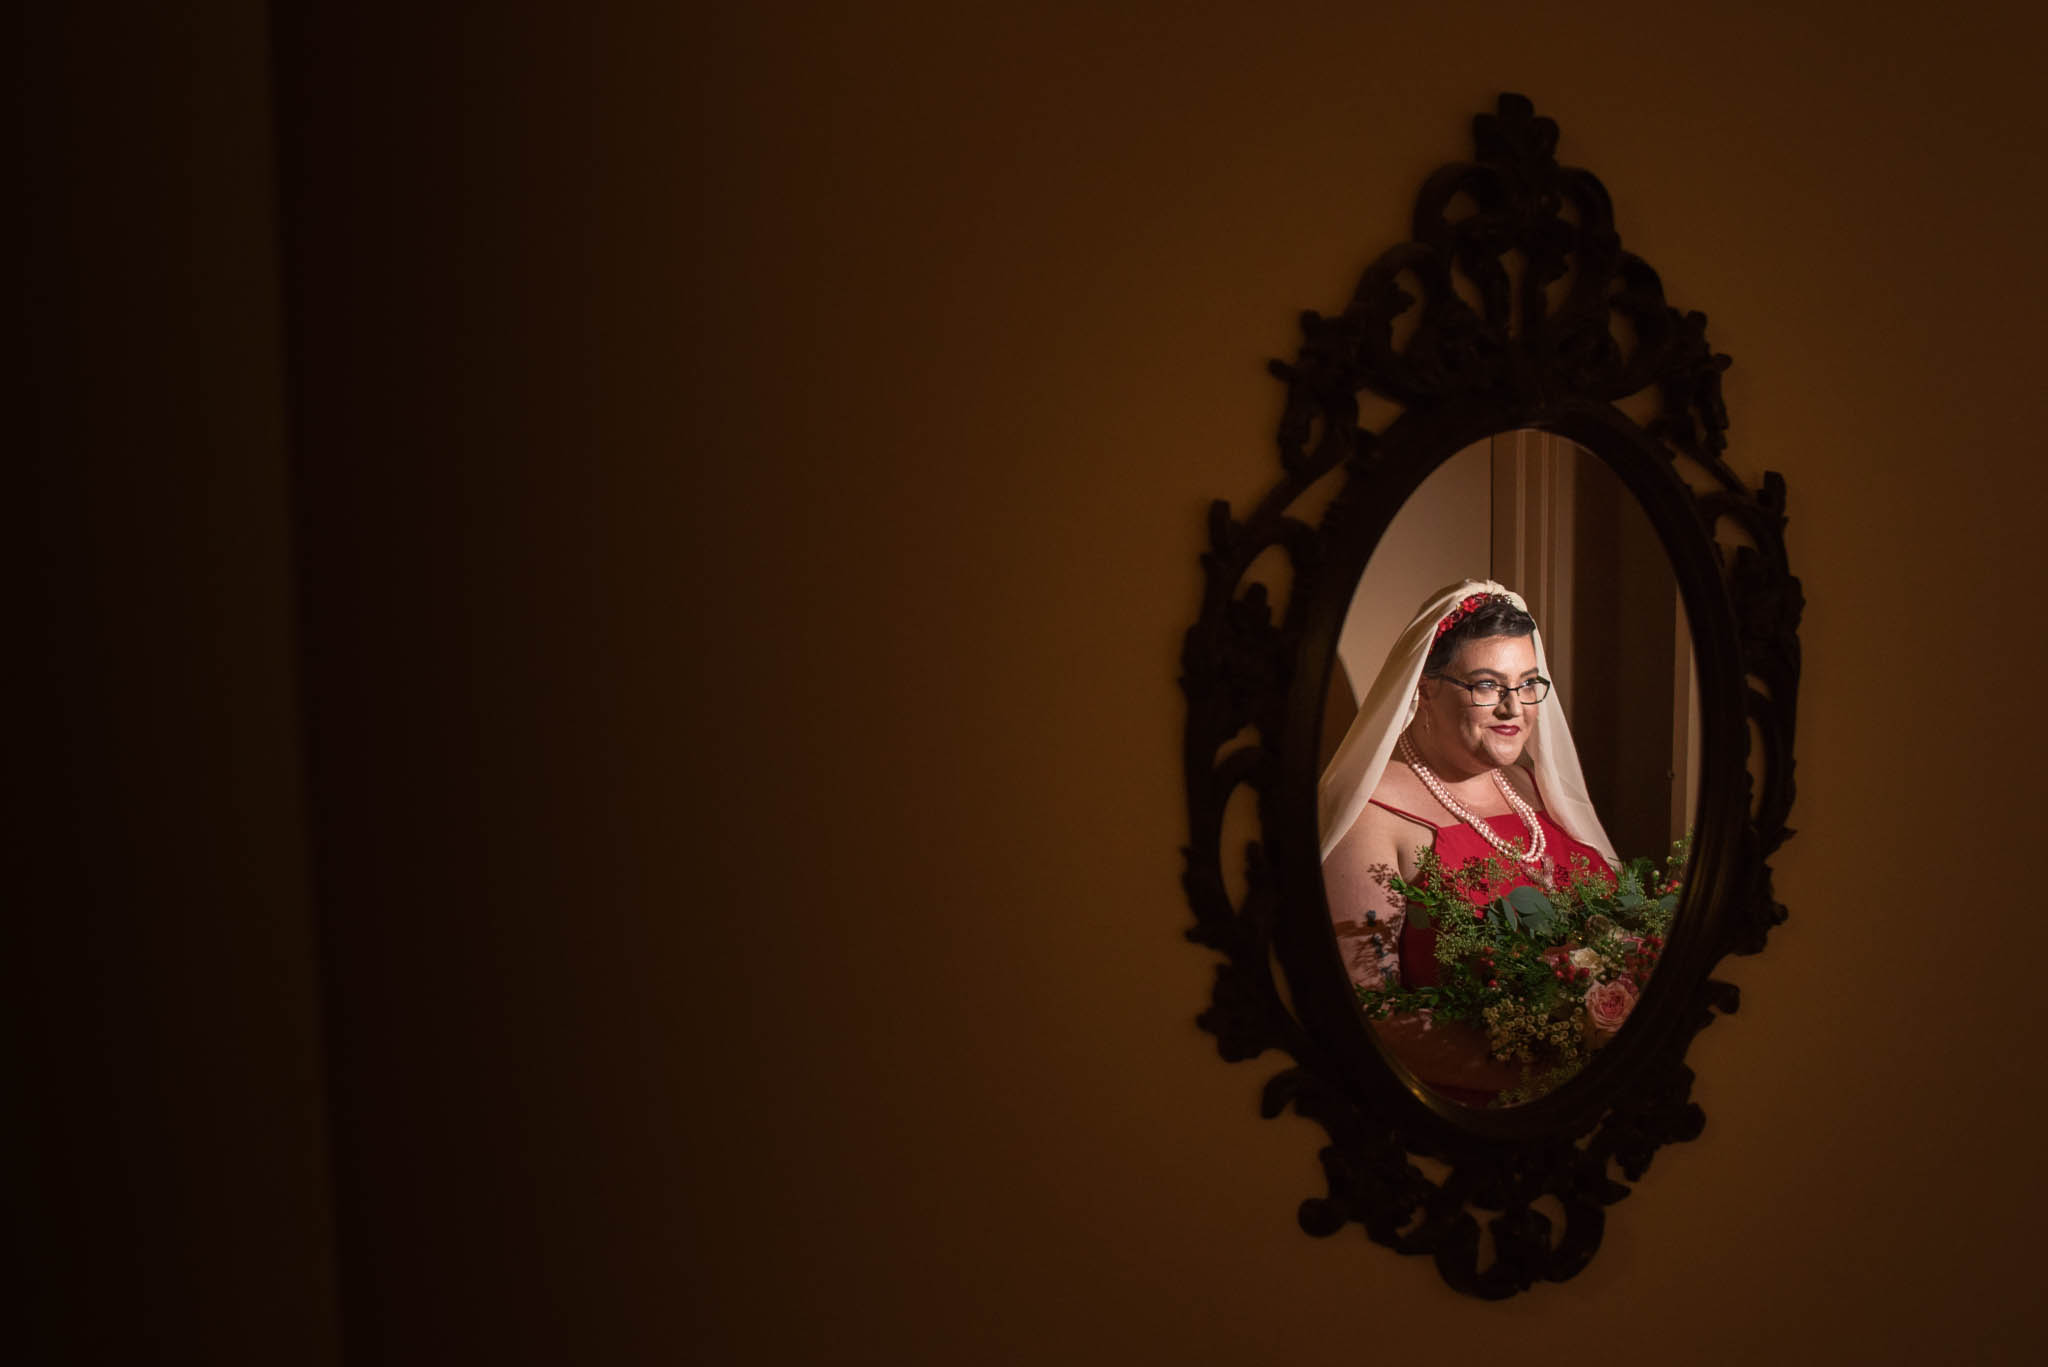 Portrait of a bride wearing red in a mirror